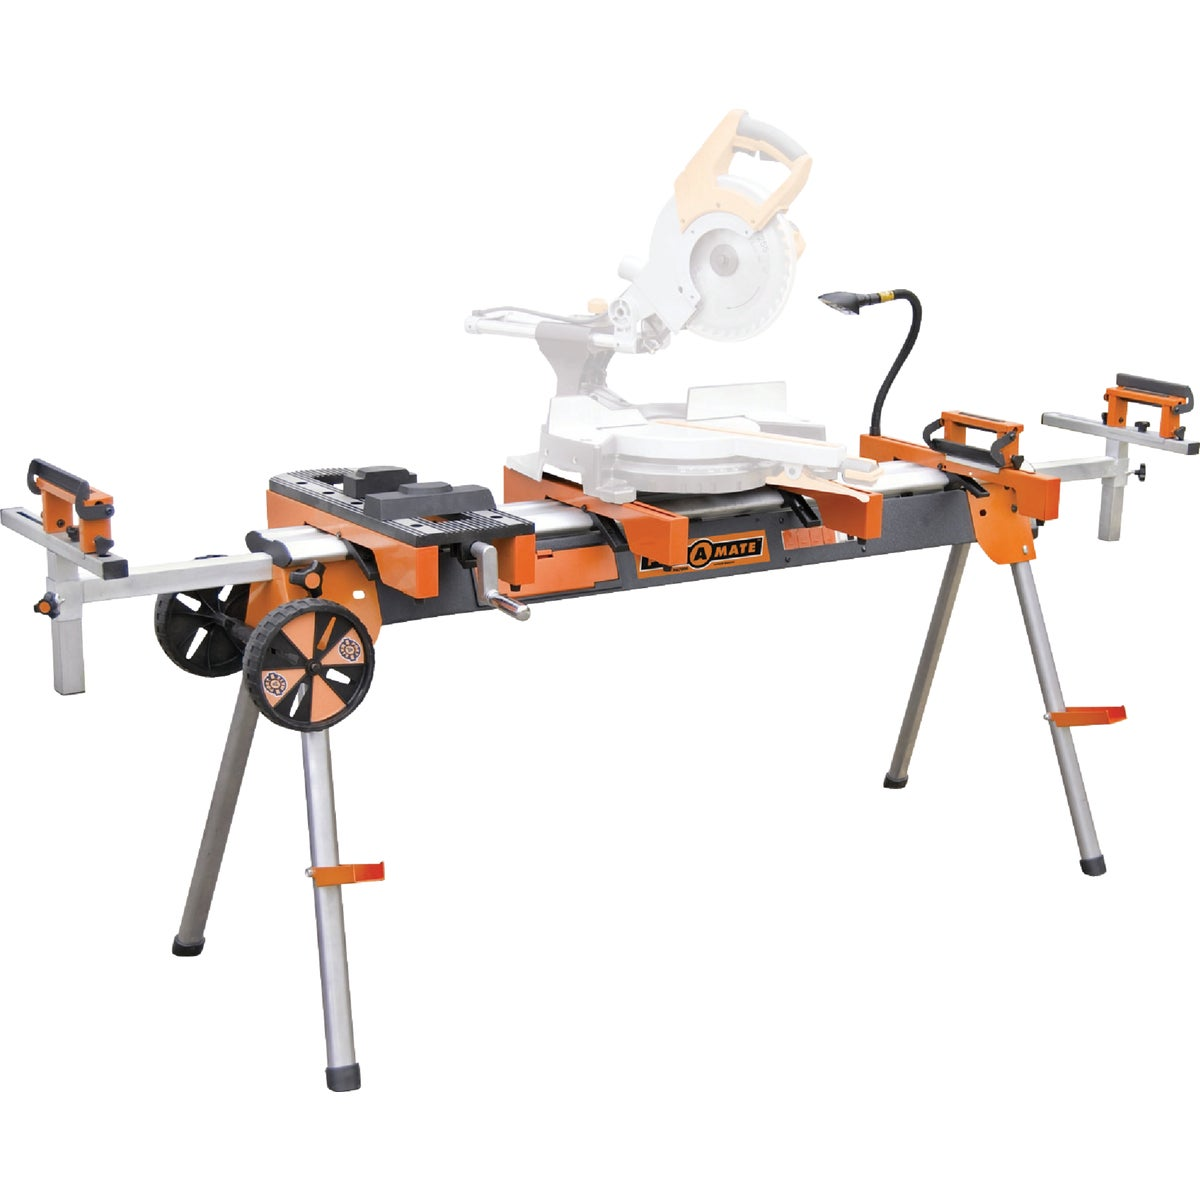 H T C Products MITRE SAW WORKCENTER PM7000